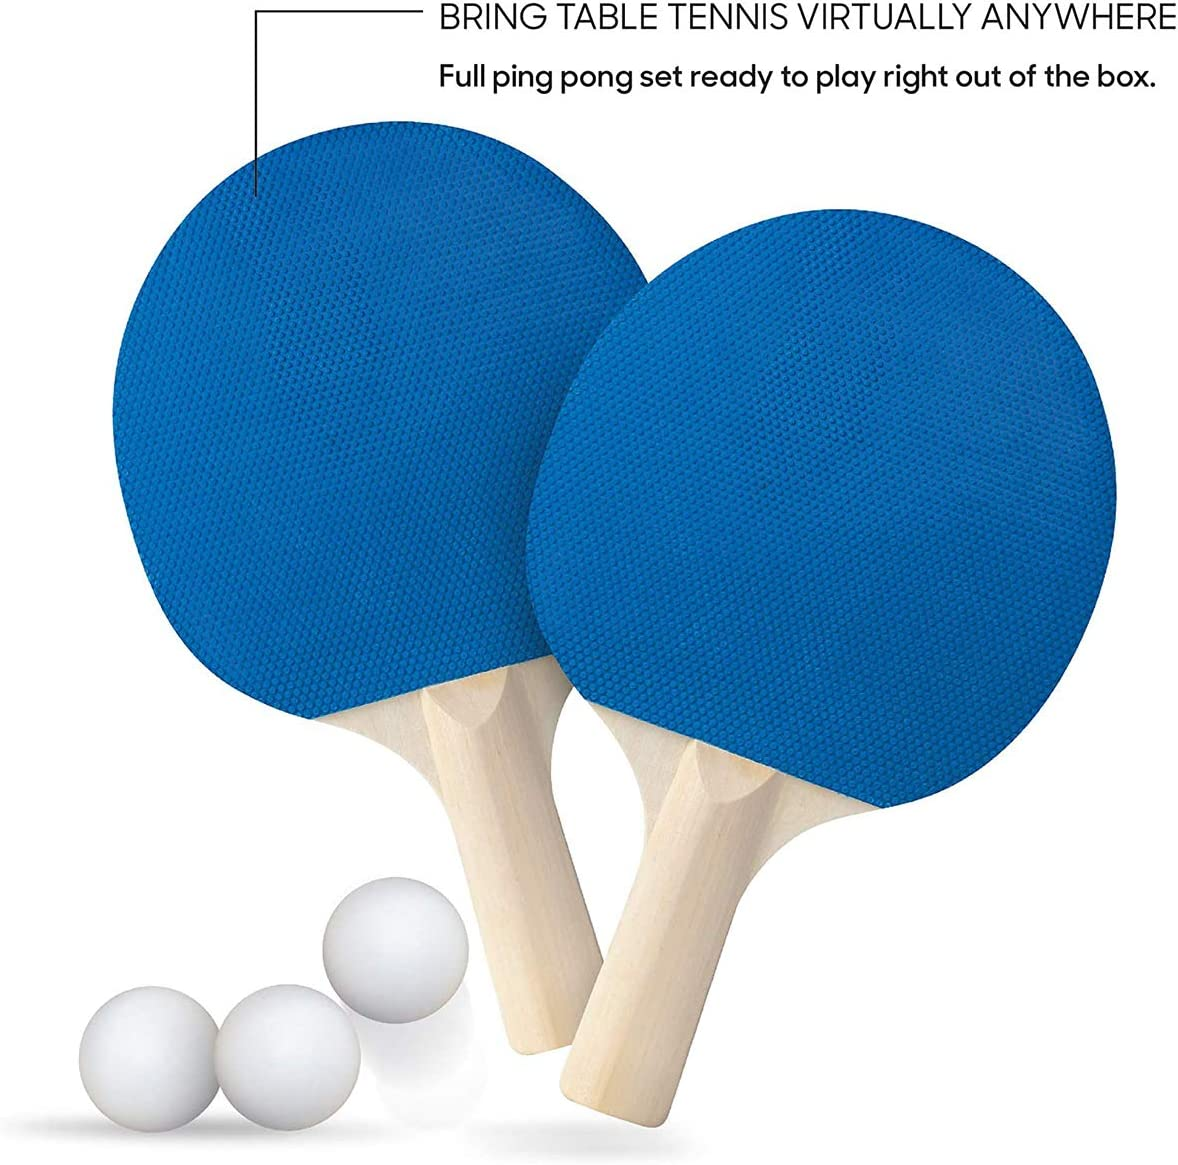 Balls Portable Ping Pong Paddle Set with Retractable Net and Posts Regulation Table Tennis Accessories Advanced Home Indoor or Outdoor Play Storage Case